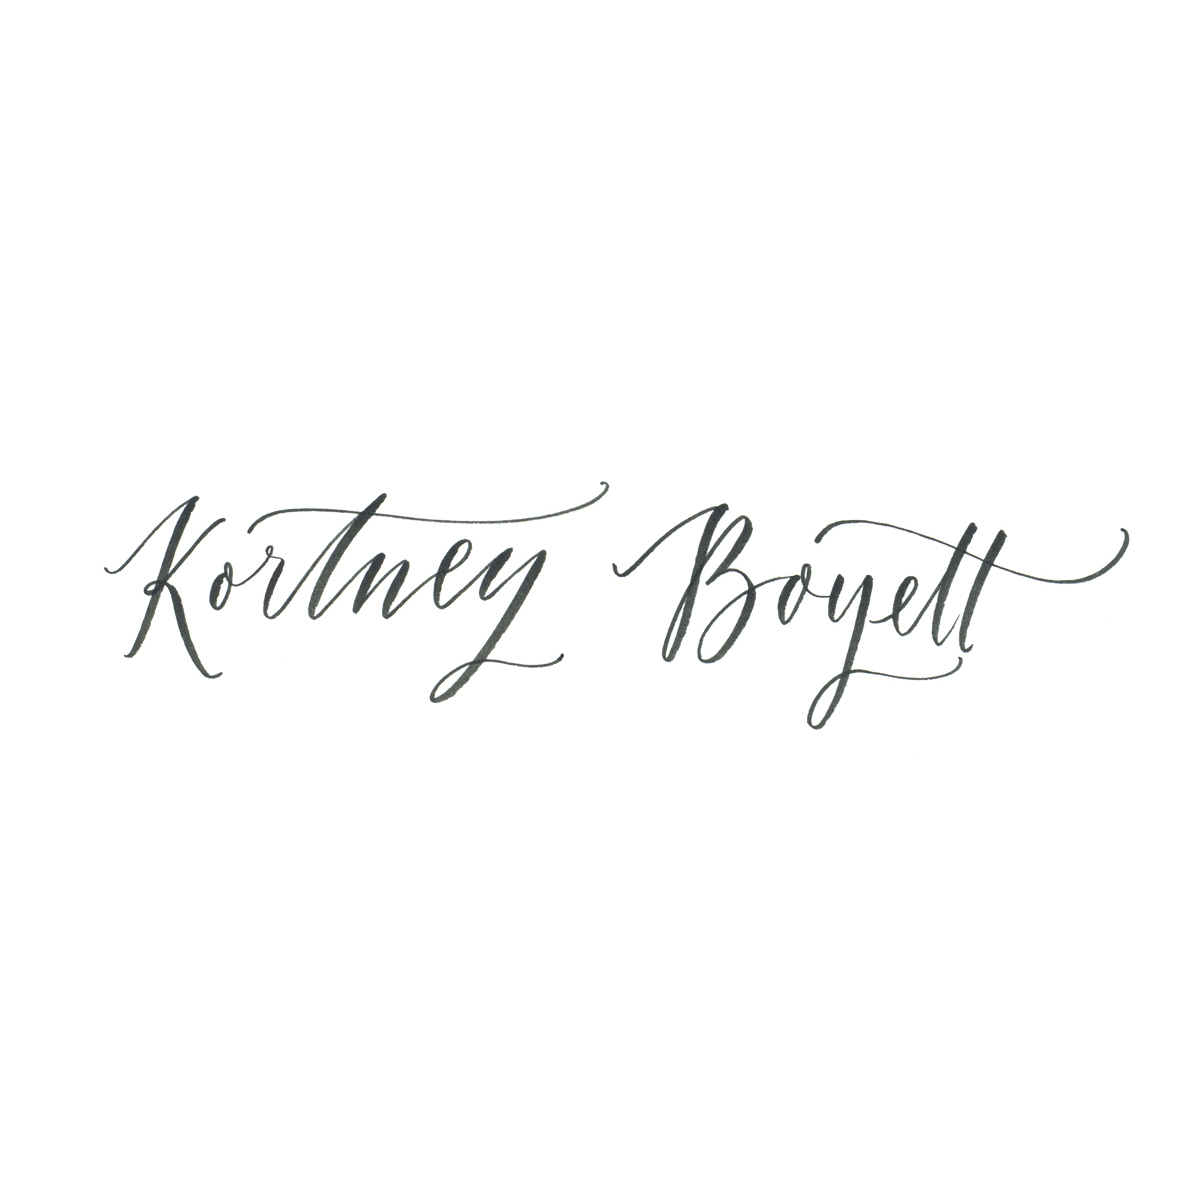 Kortney Boyett hand-lettered logo